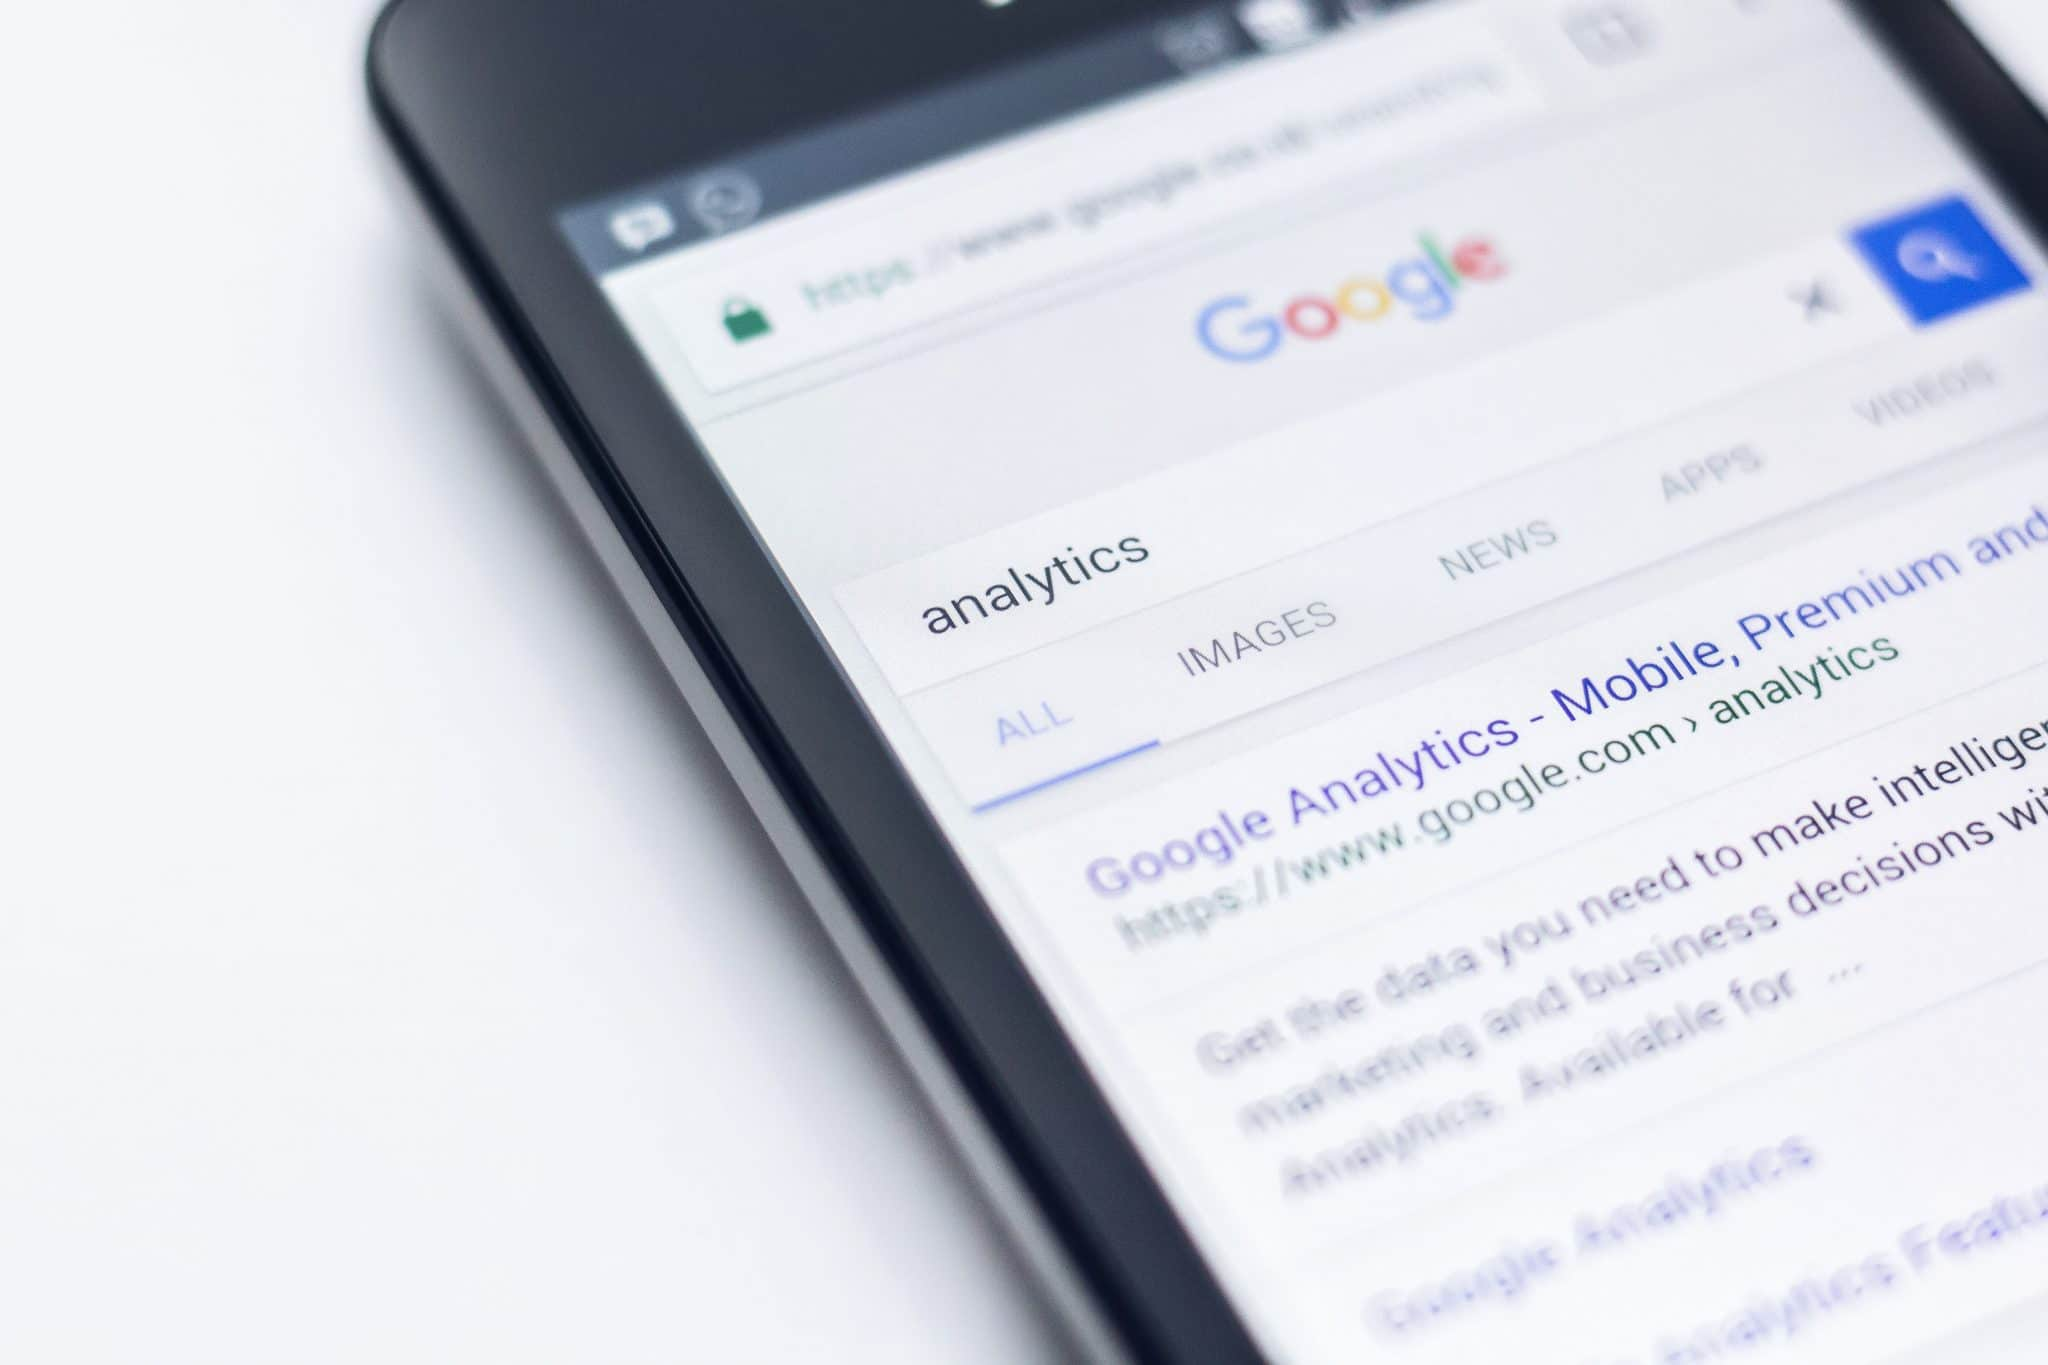 an iPhone showing a google search for the term analytics